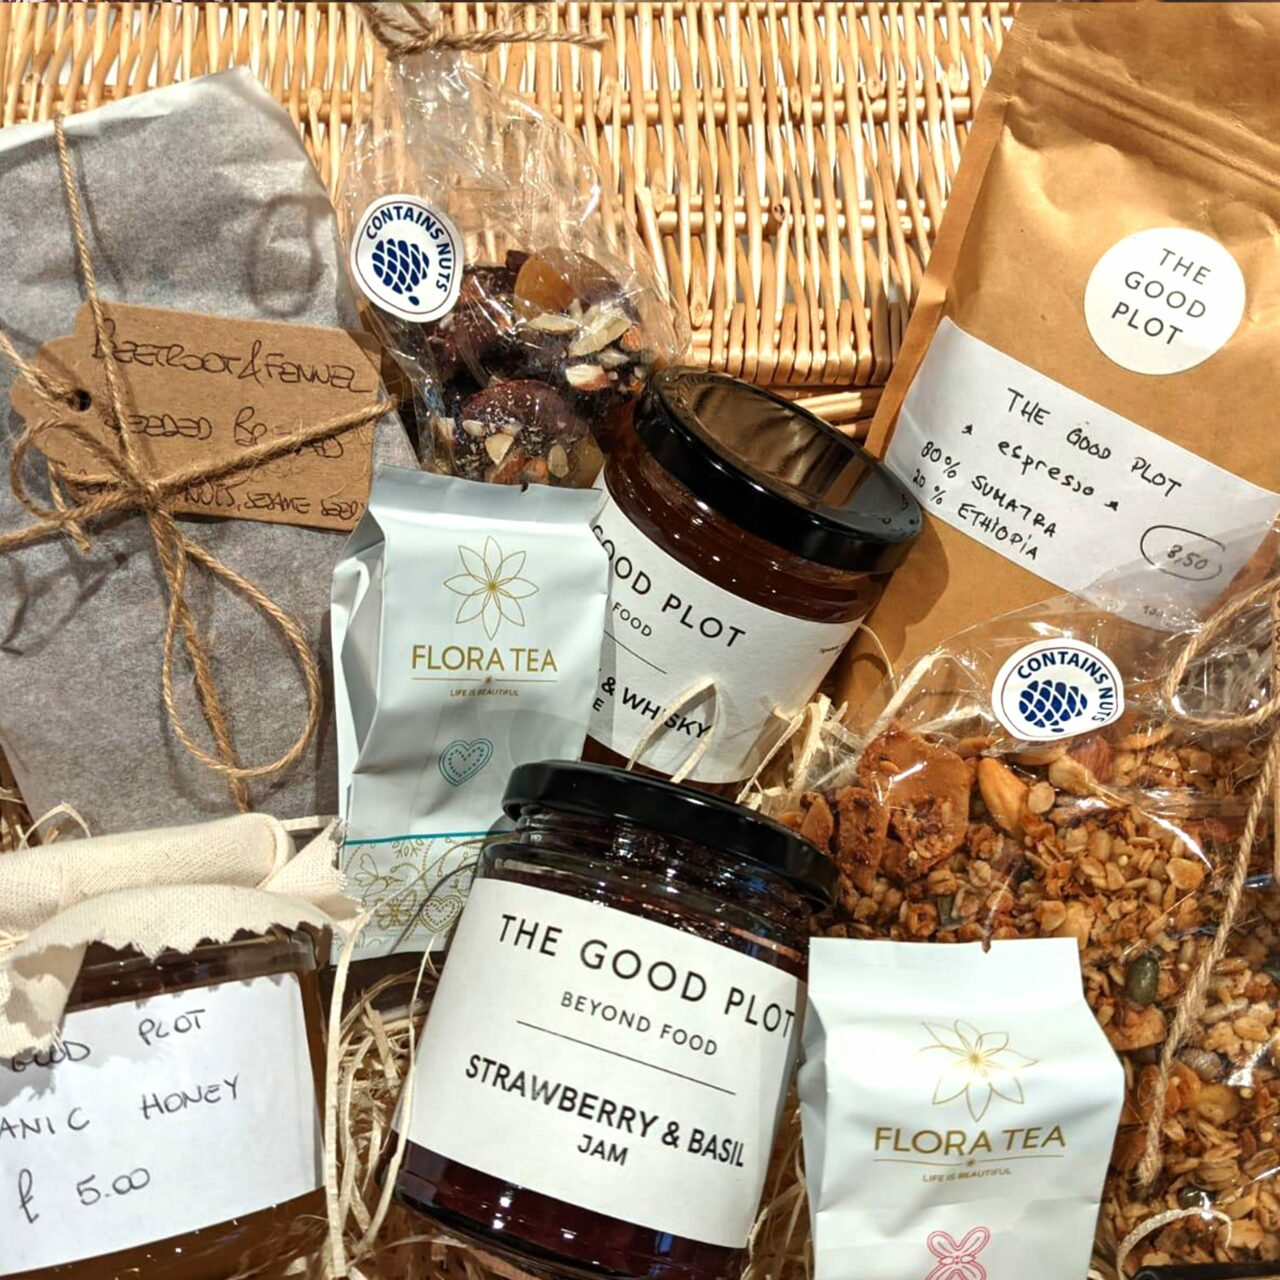 Luxury Mother's Day hamper at The Good Plot